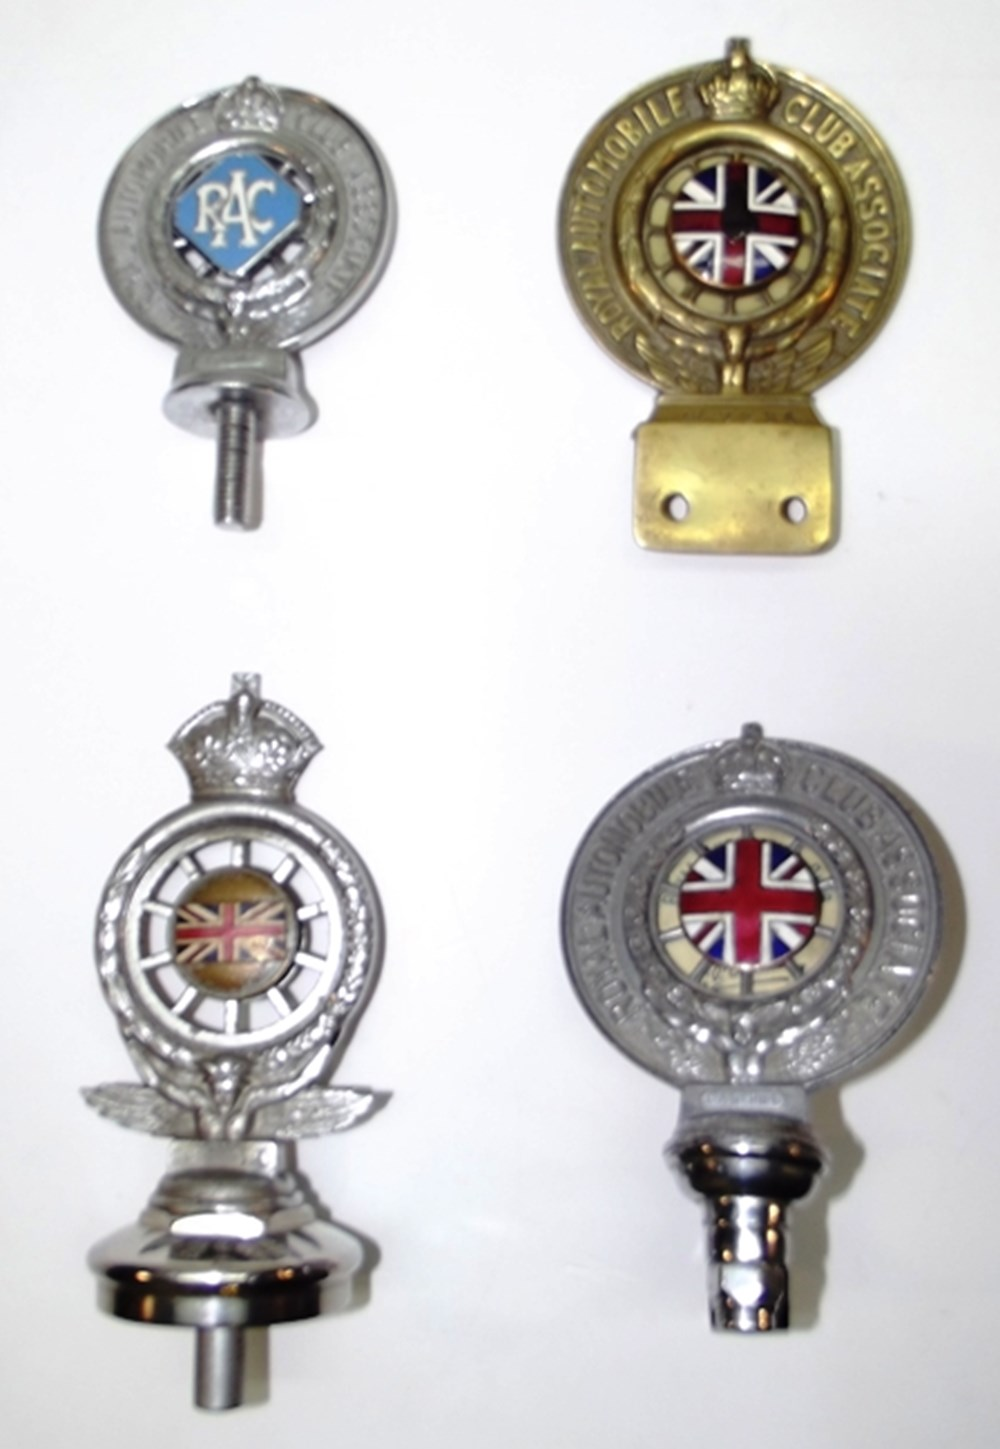 Lot 023 - Four early RAC badges